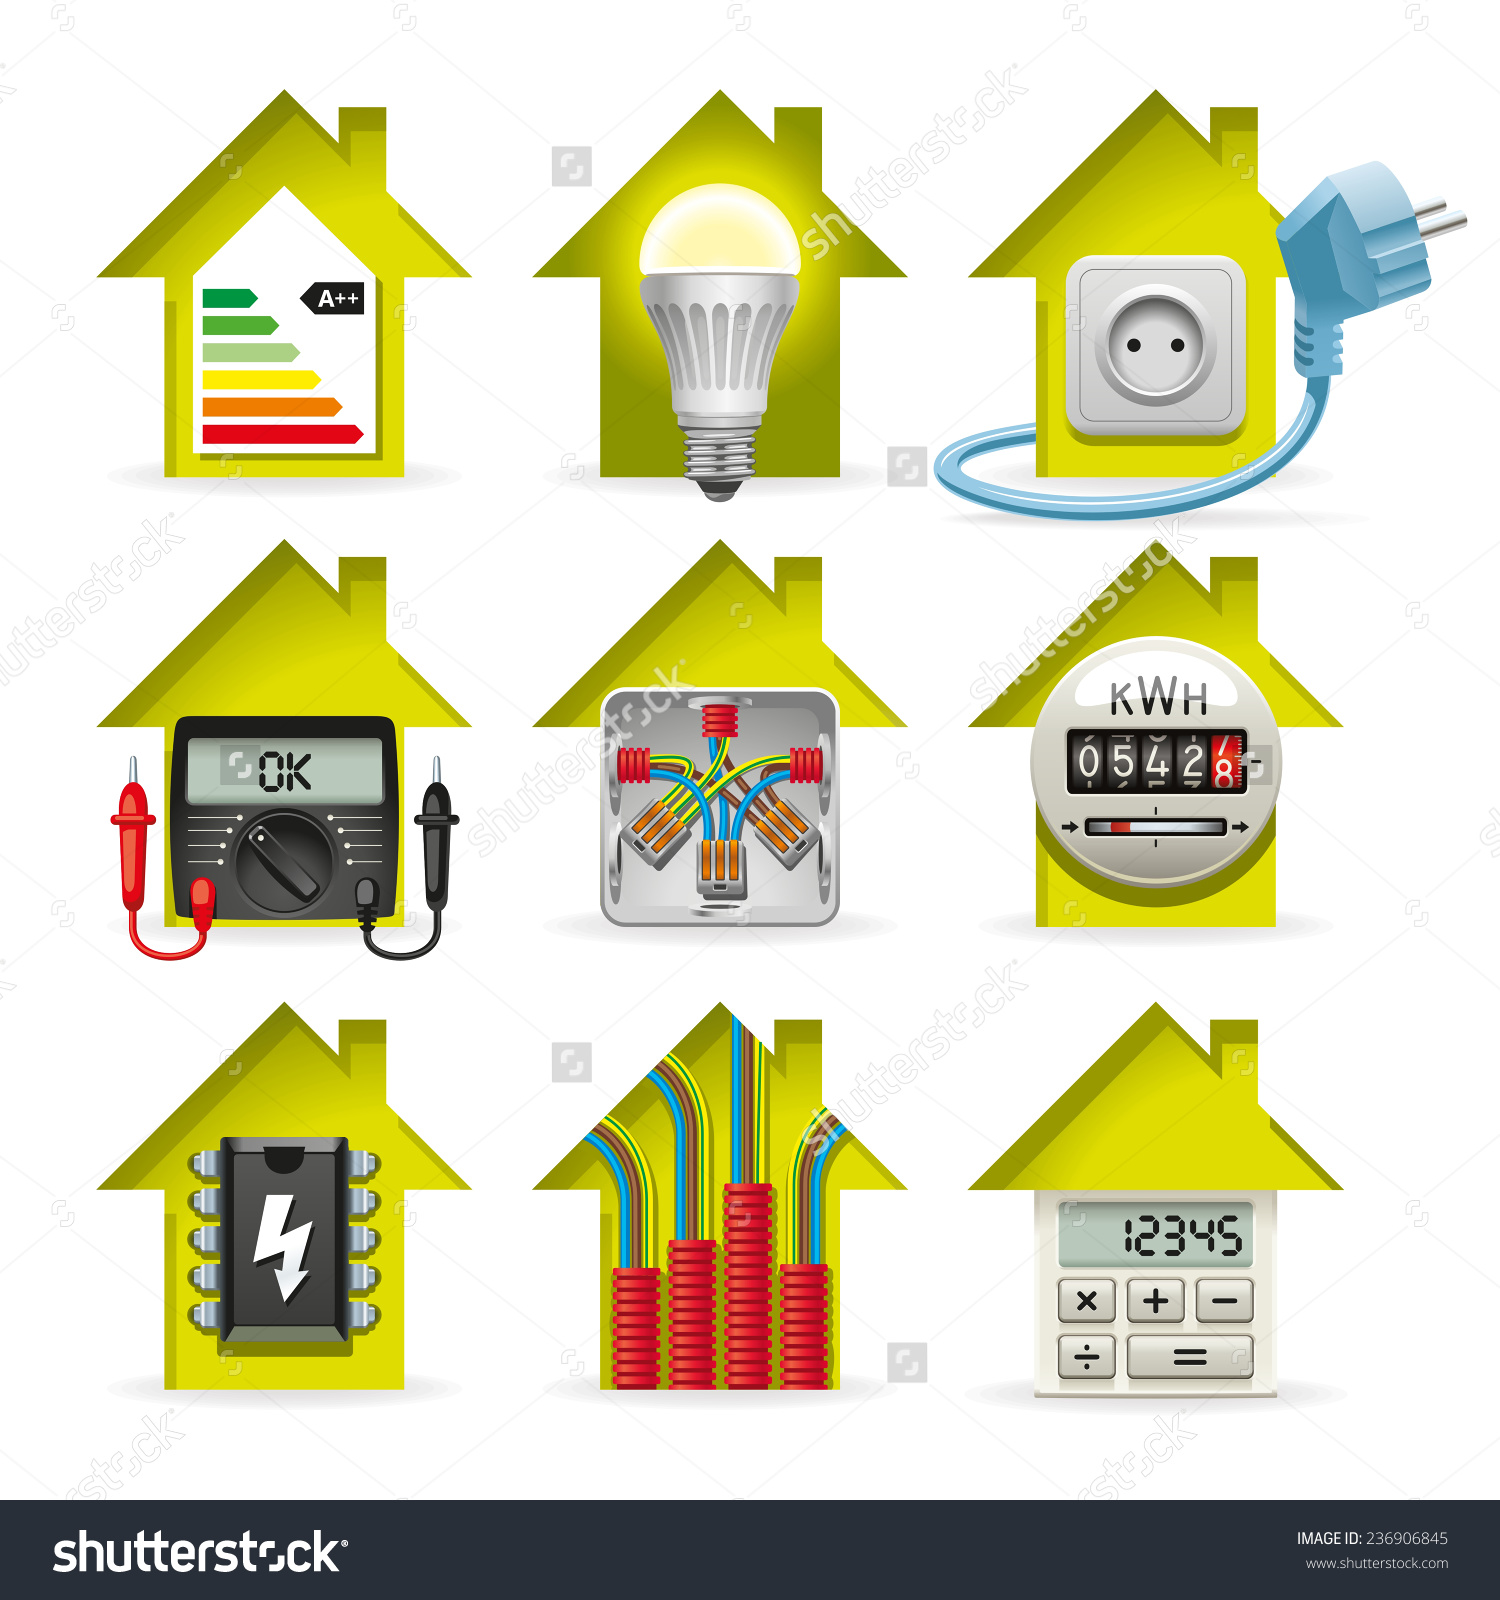 Icons Installation Electrical Equipment Wiring House Stock Vector.